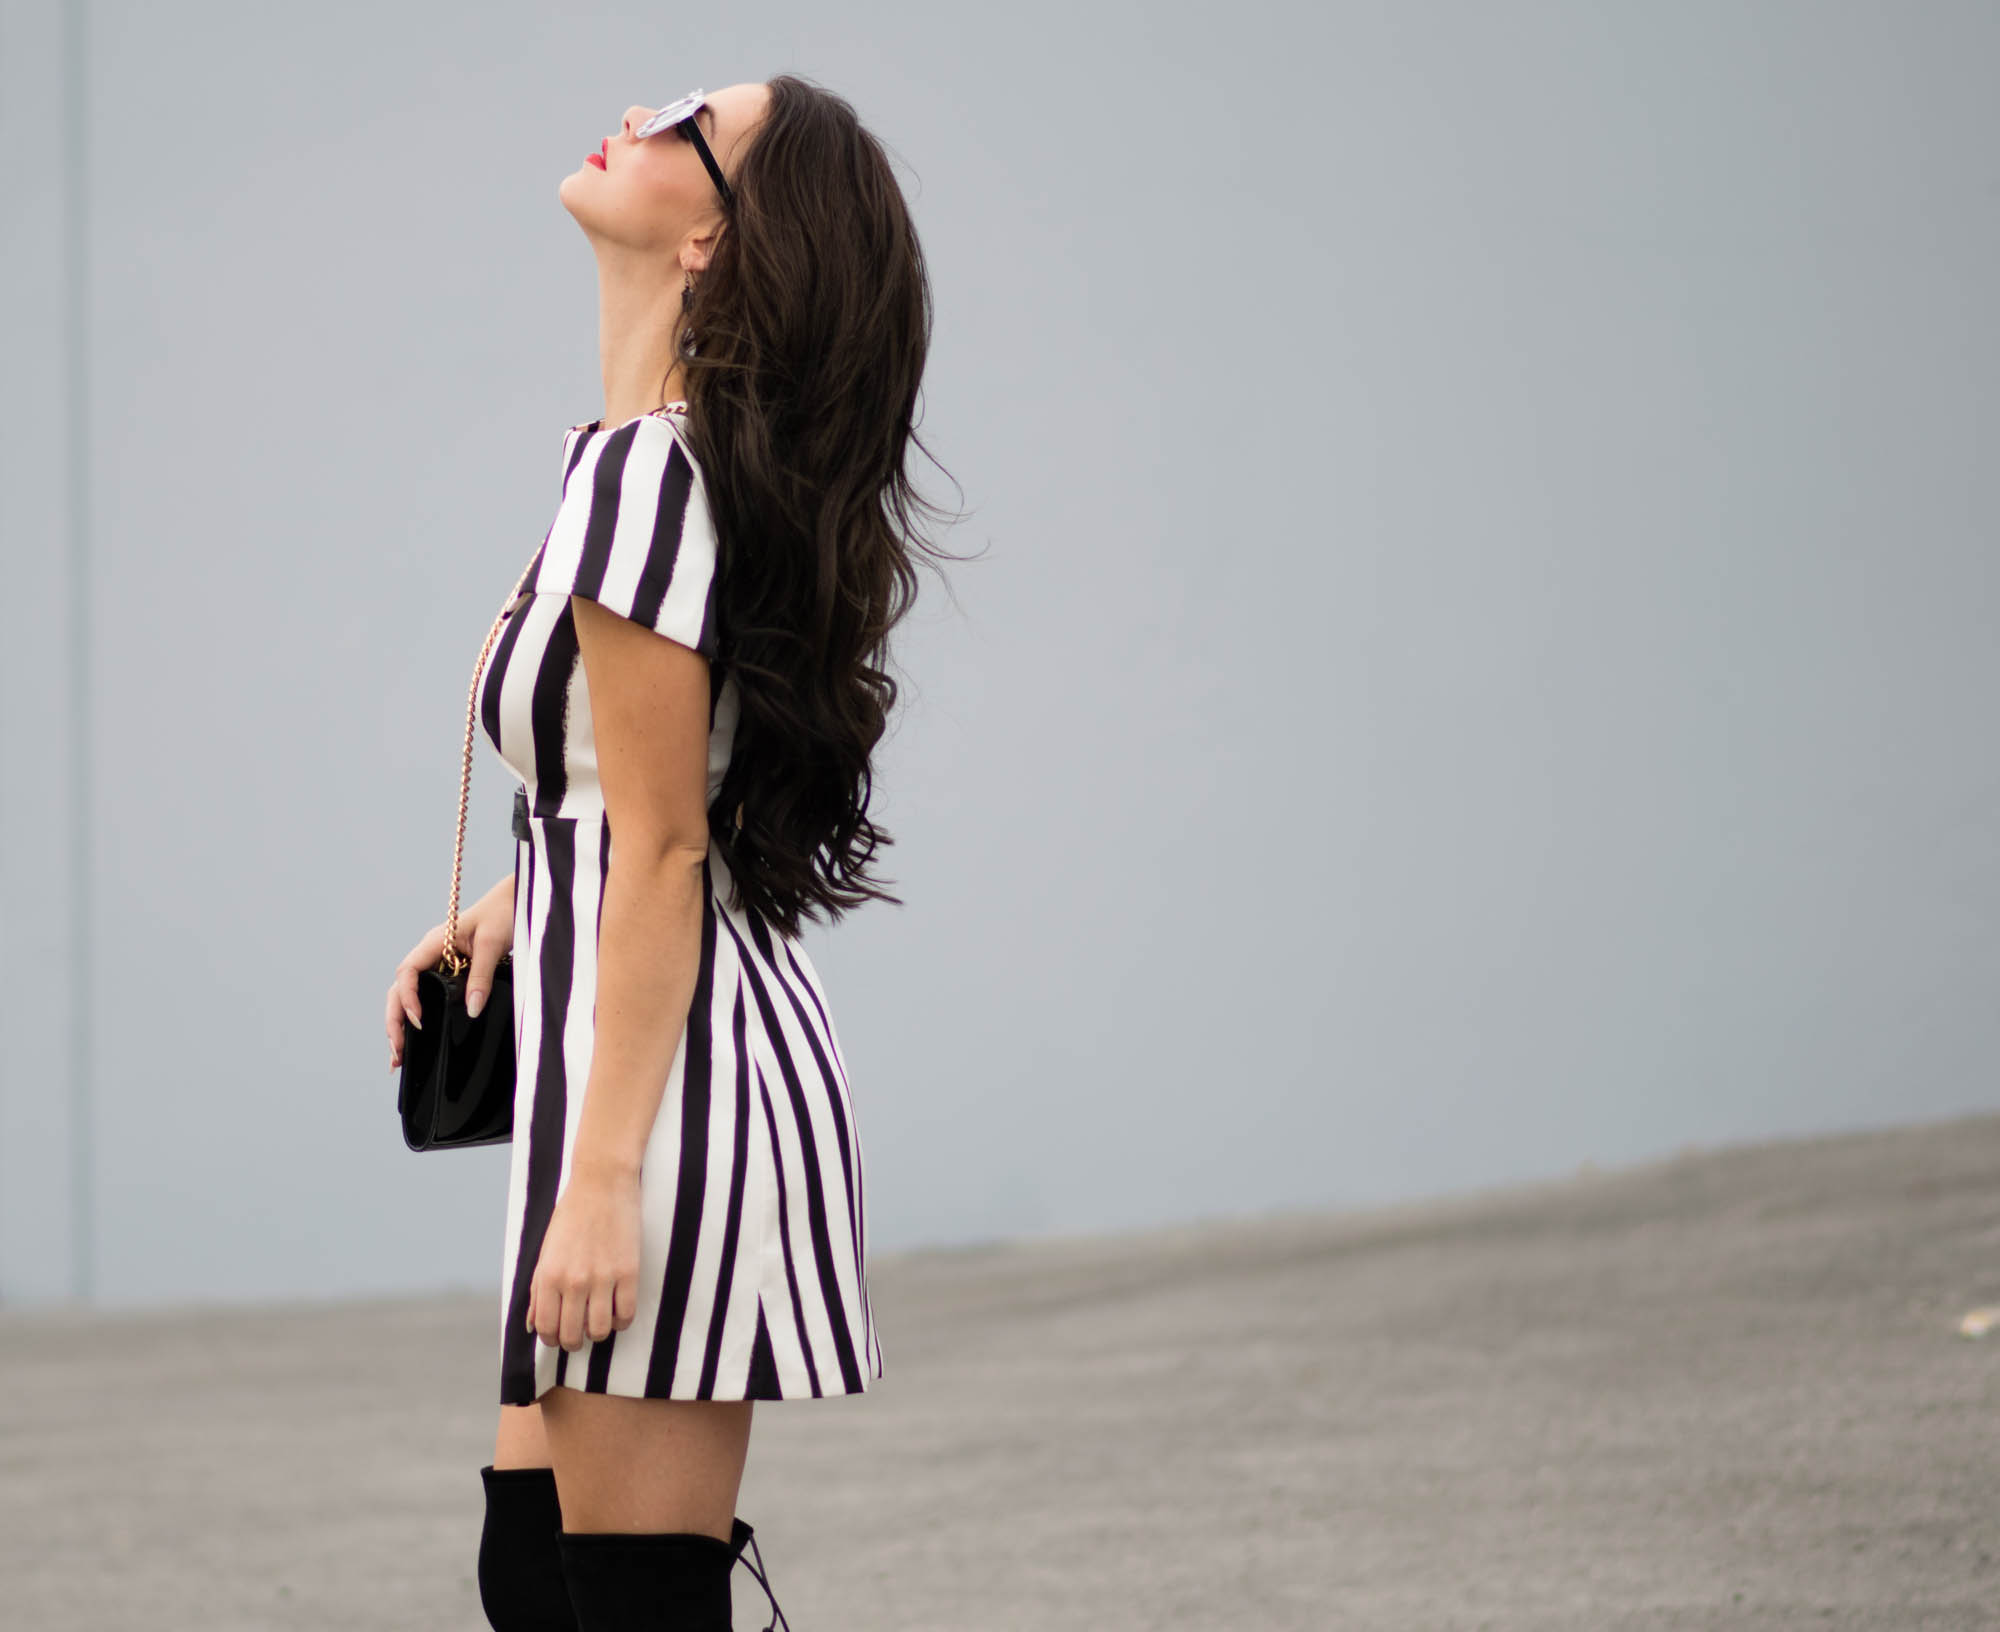 Topshop striped dress